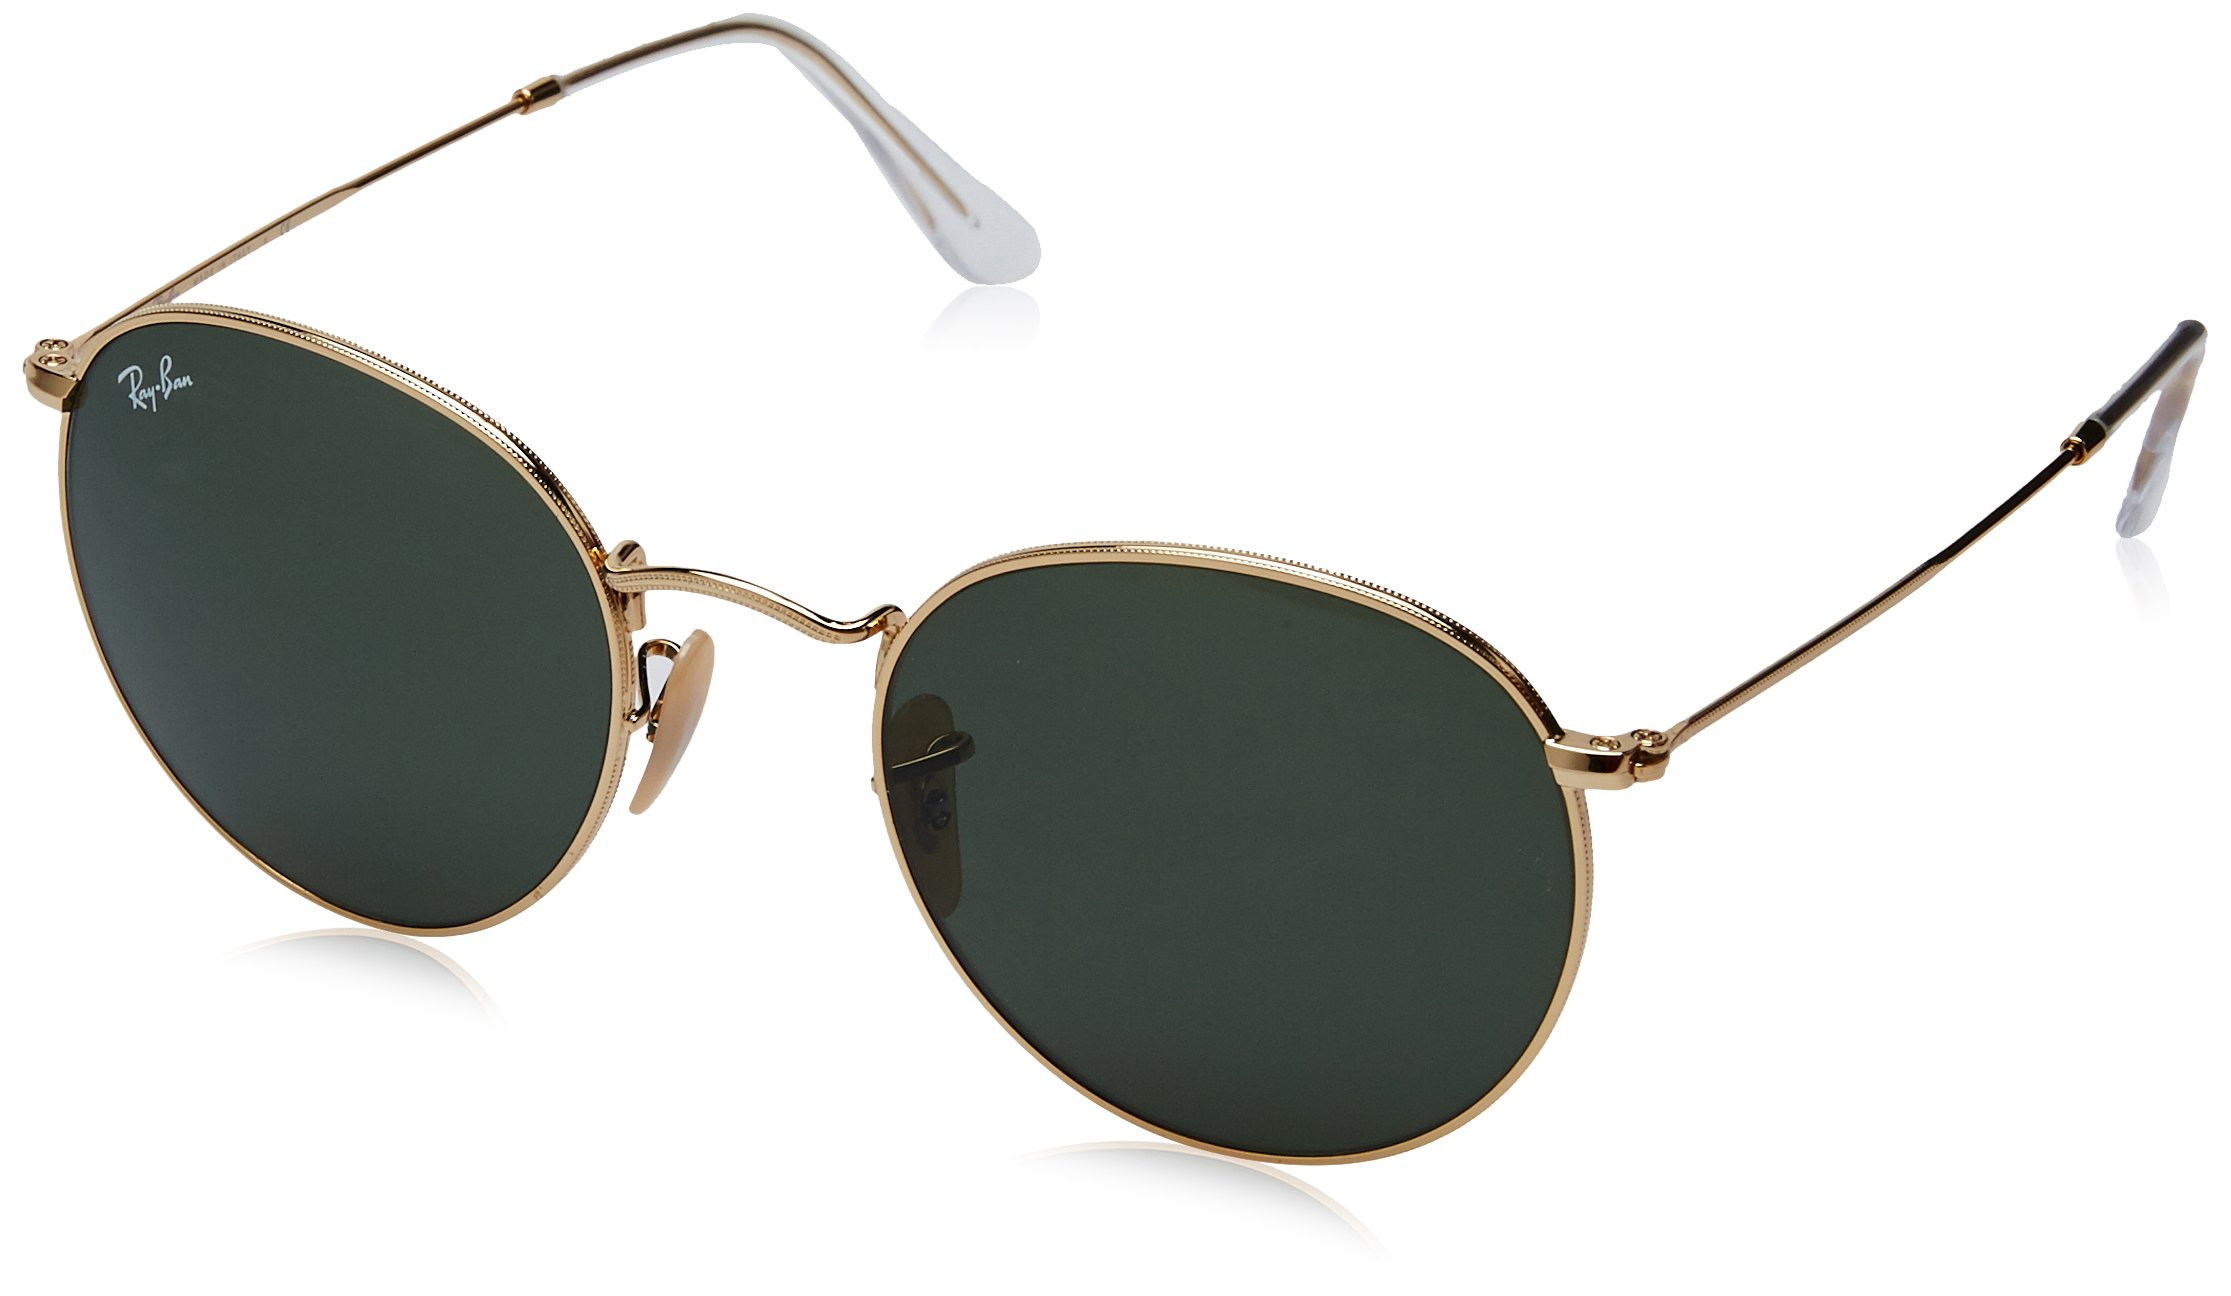 Ray-Ban Metal Round Sunglasses, Arista, 53 mm